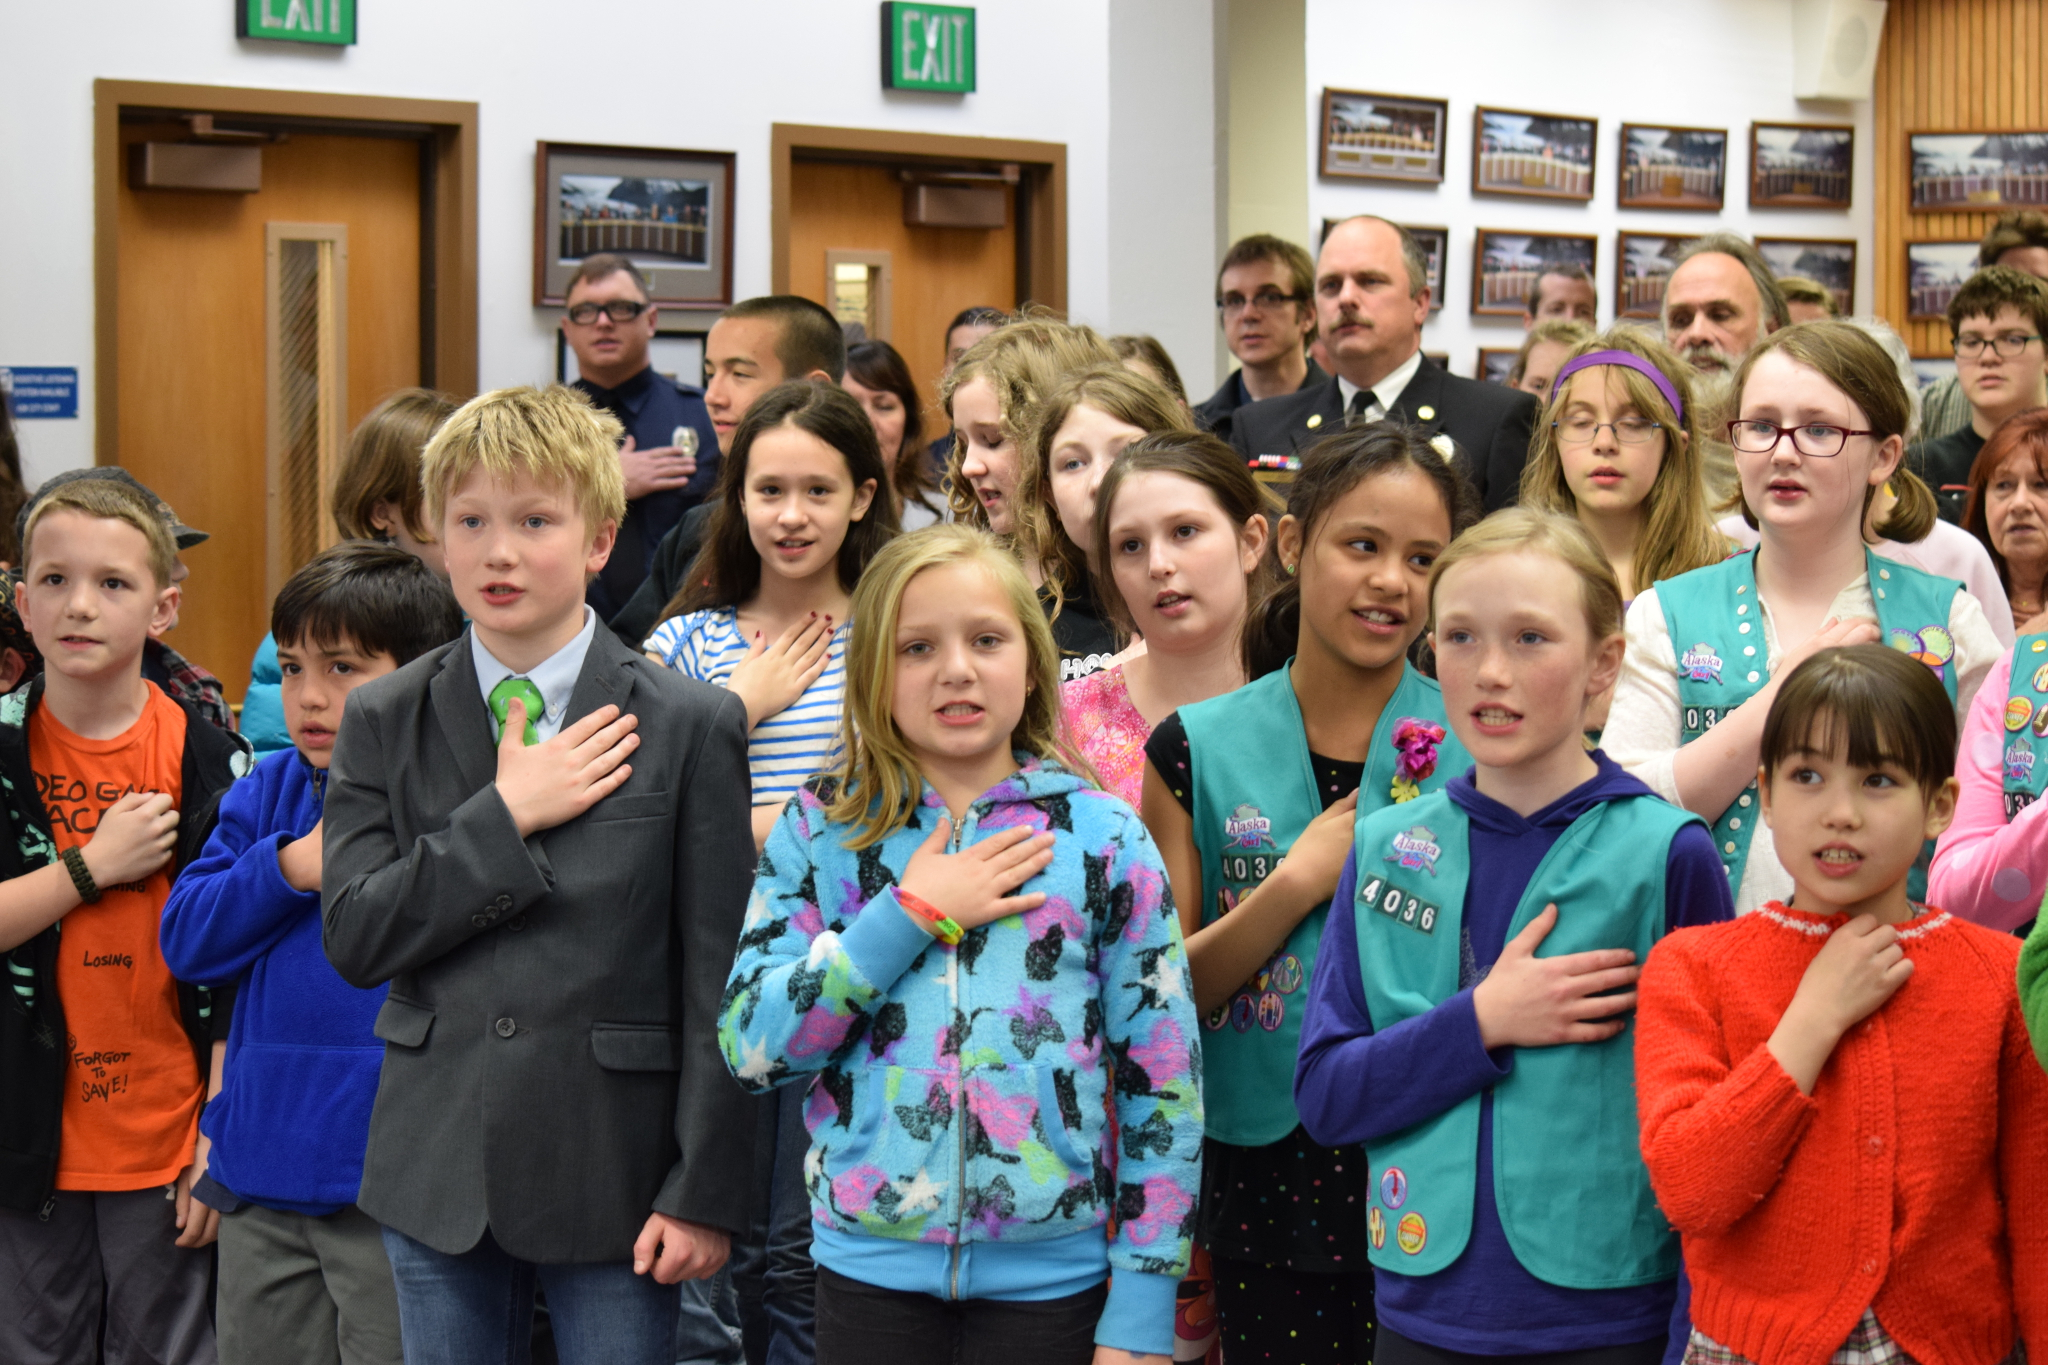 More than 30 Juneau school kids attended Monday's CBJ Assembly meeting to show support for full funding for education. They also led the Assembly in the flag salute before the meeting. (Photo by Casey Kelly/KTOO)